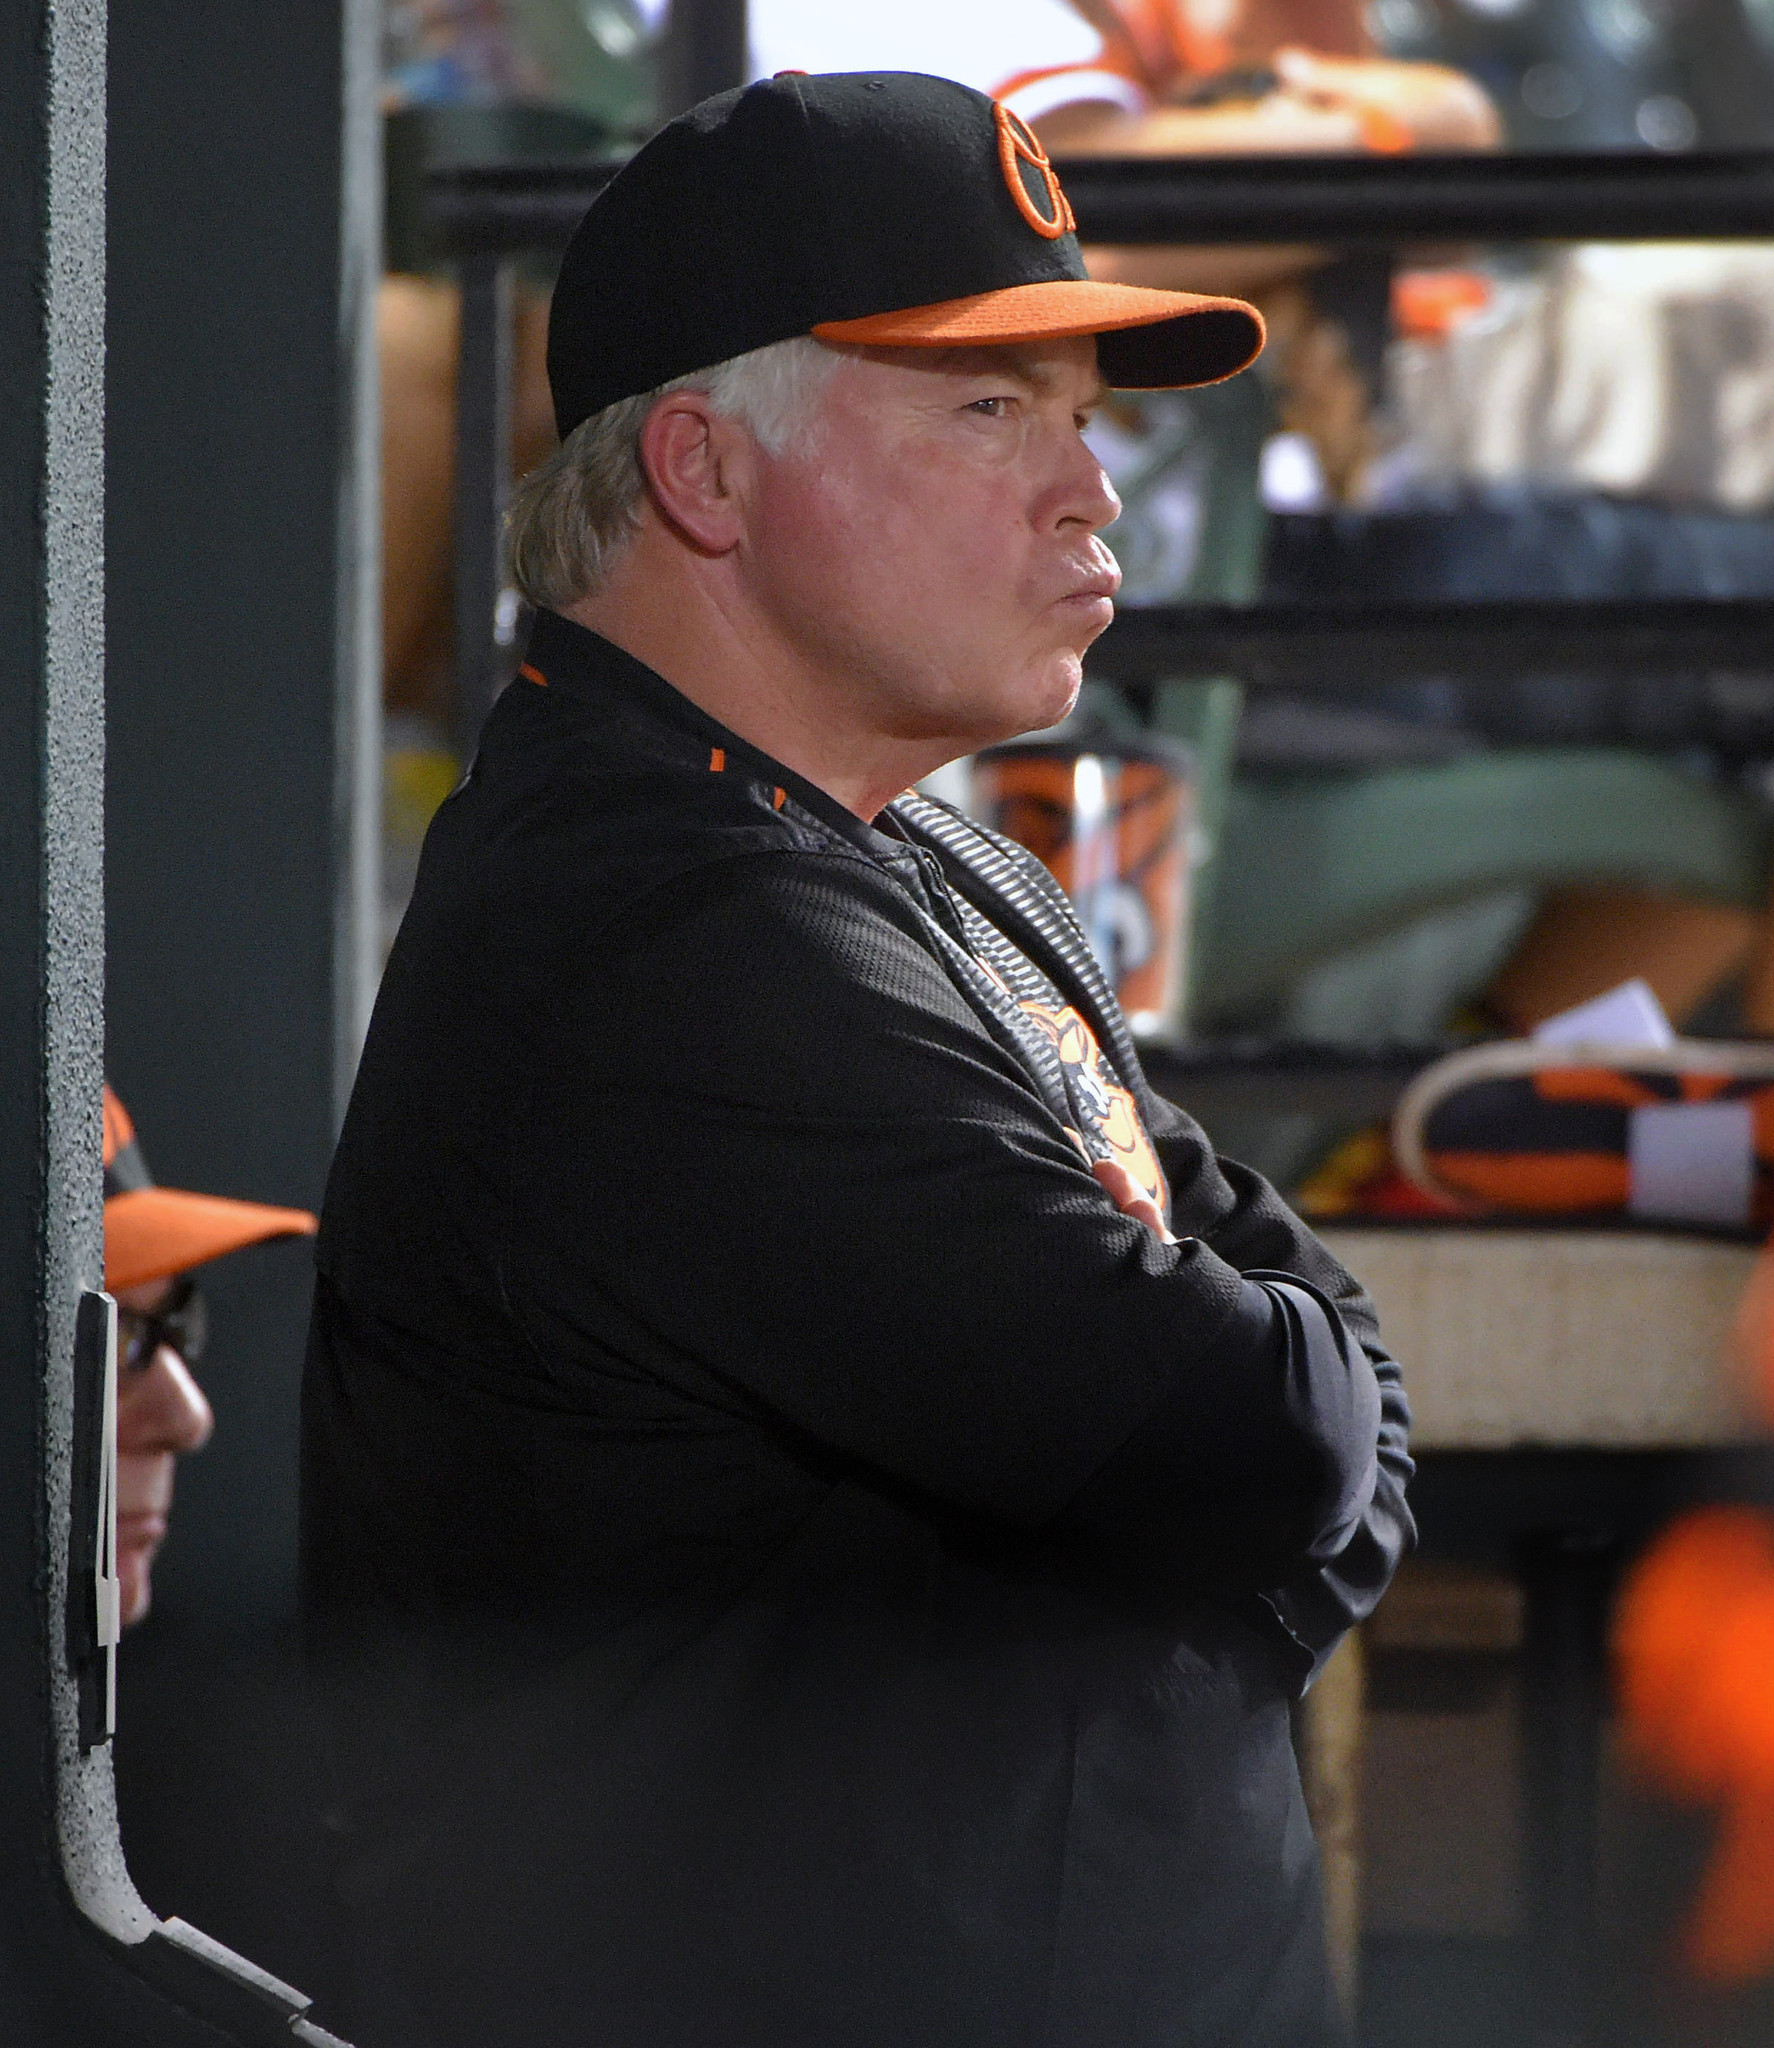 Bal-orioles-manager-buck-showalter-talks-free-agent-rumors-outfield-and-more-at-winter-meetings-20161207